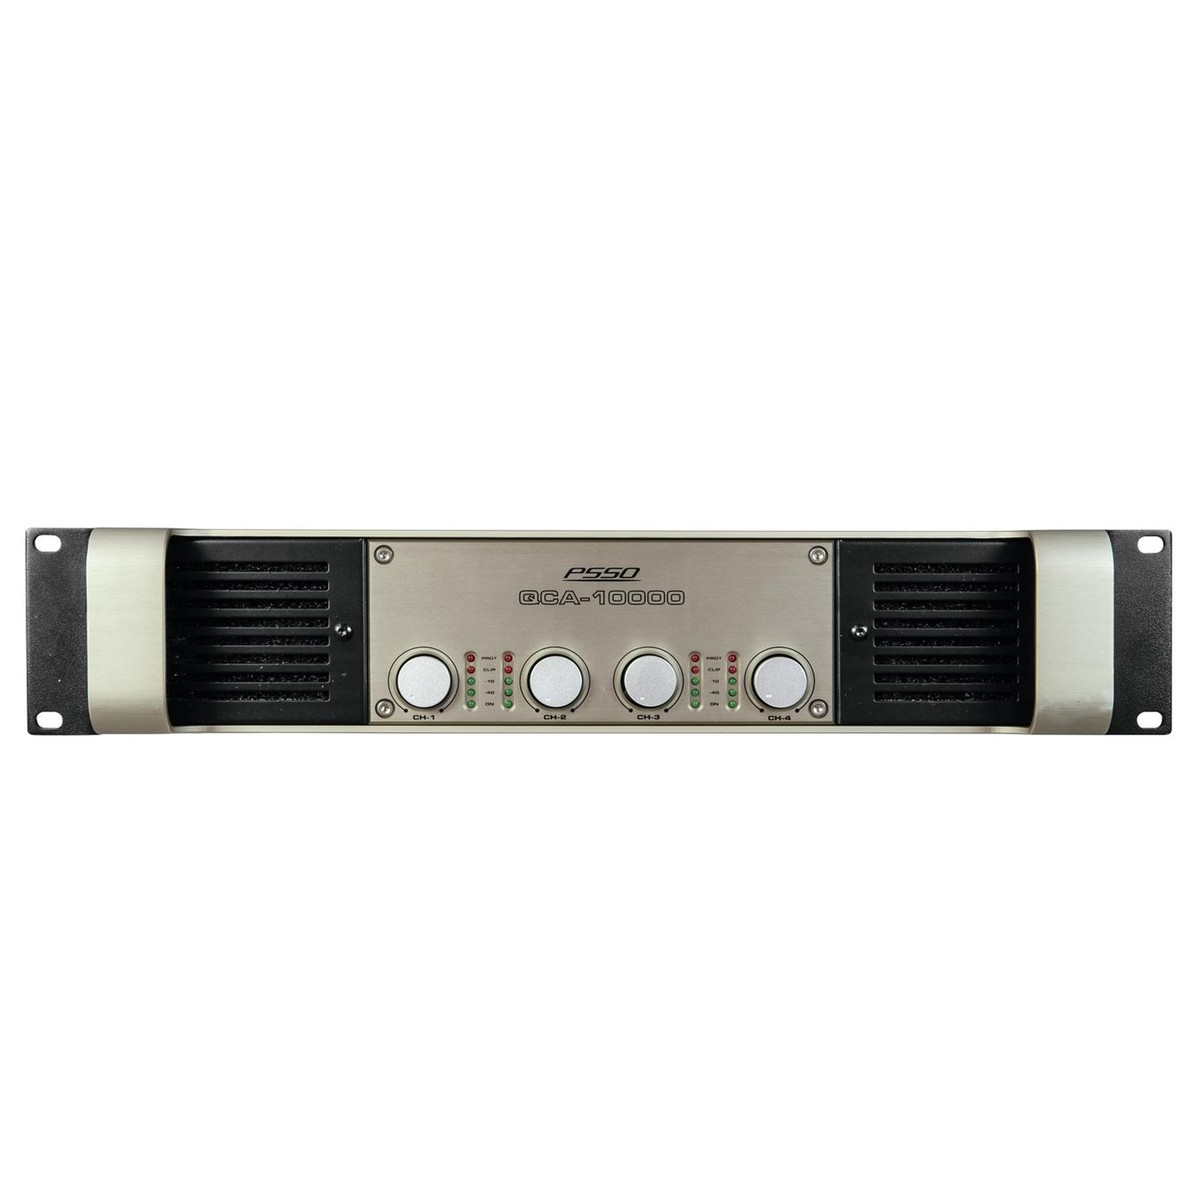 Psso Qca 10000 4 Channel Smps Amplifier At Gear4musiccom 5000w High Power Circuit Electronic Design